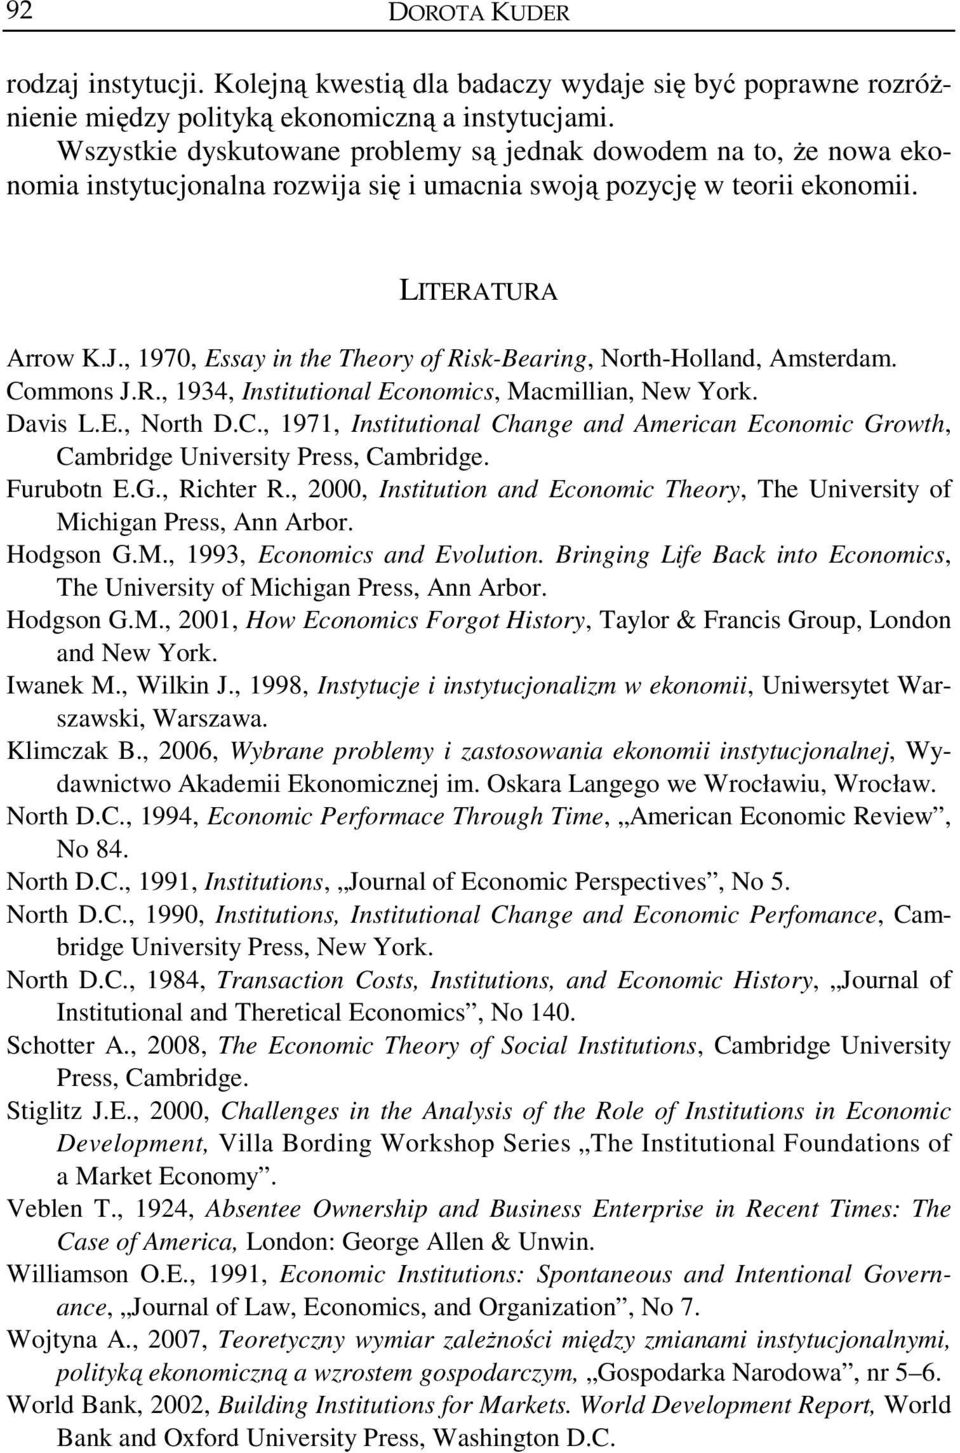 , 1970, Essay in the Theory of Risk-Bearing, North-Holland, Amsterdam. Commons J.R., 1934, Institutional Economics, Macmillian, New York. Davis L.E., North D.C., 1971, Institutional Change and American Economic Growth, Cambridge University Press, Cambridge.